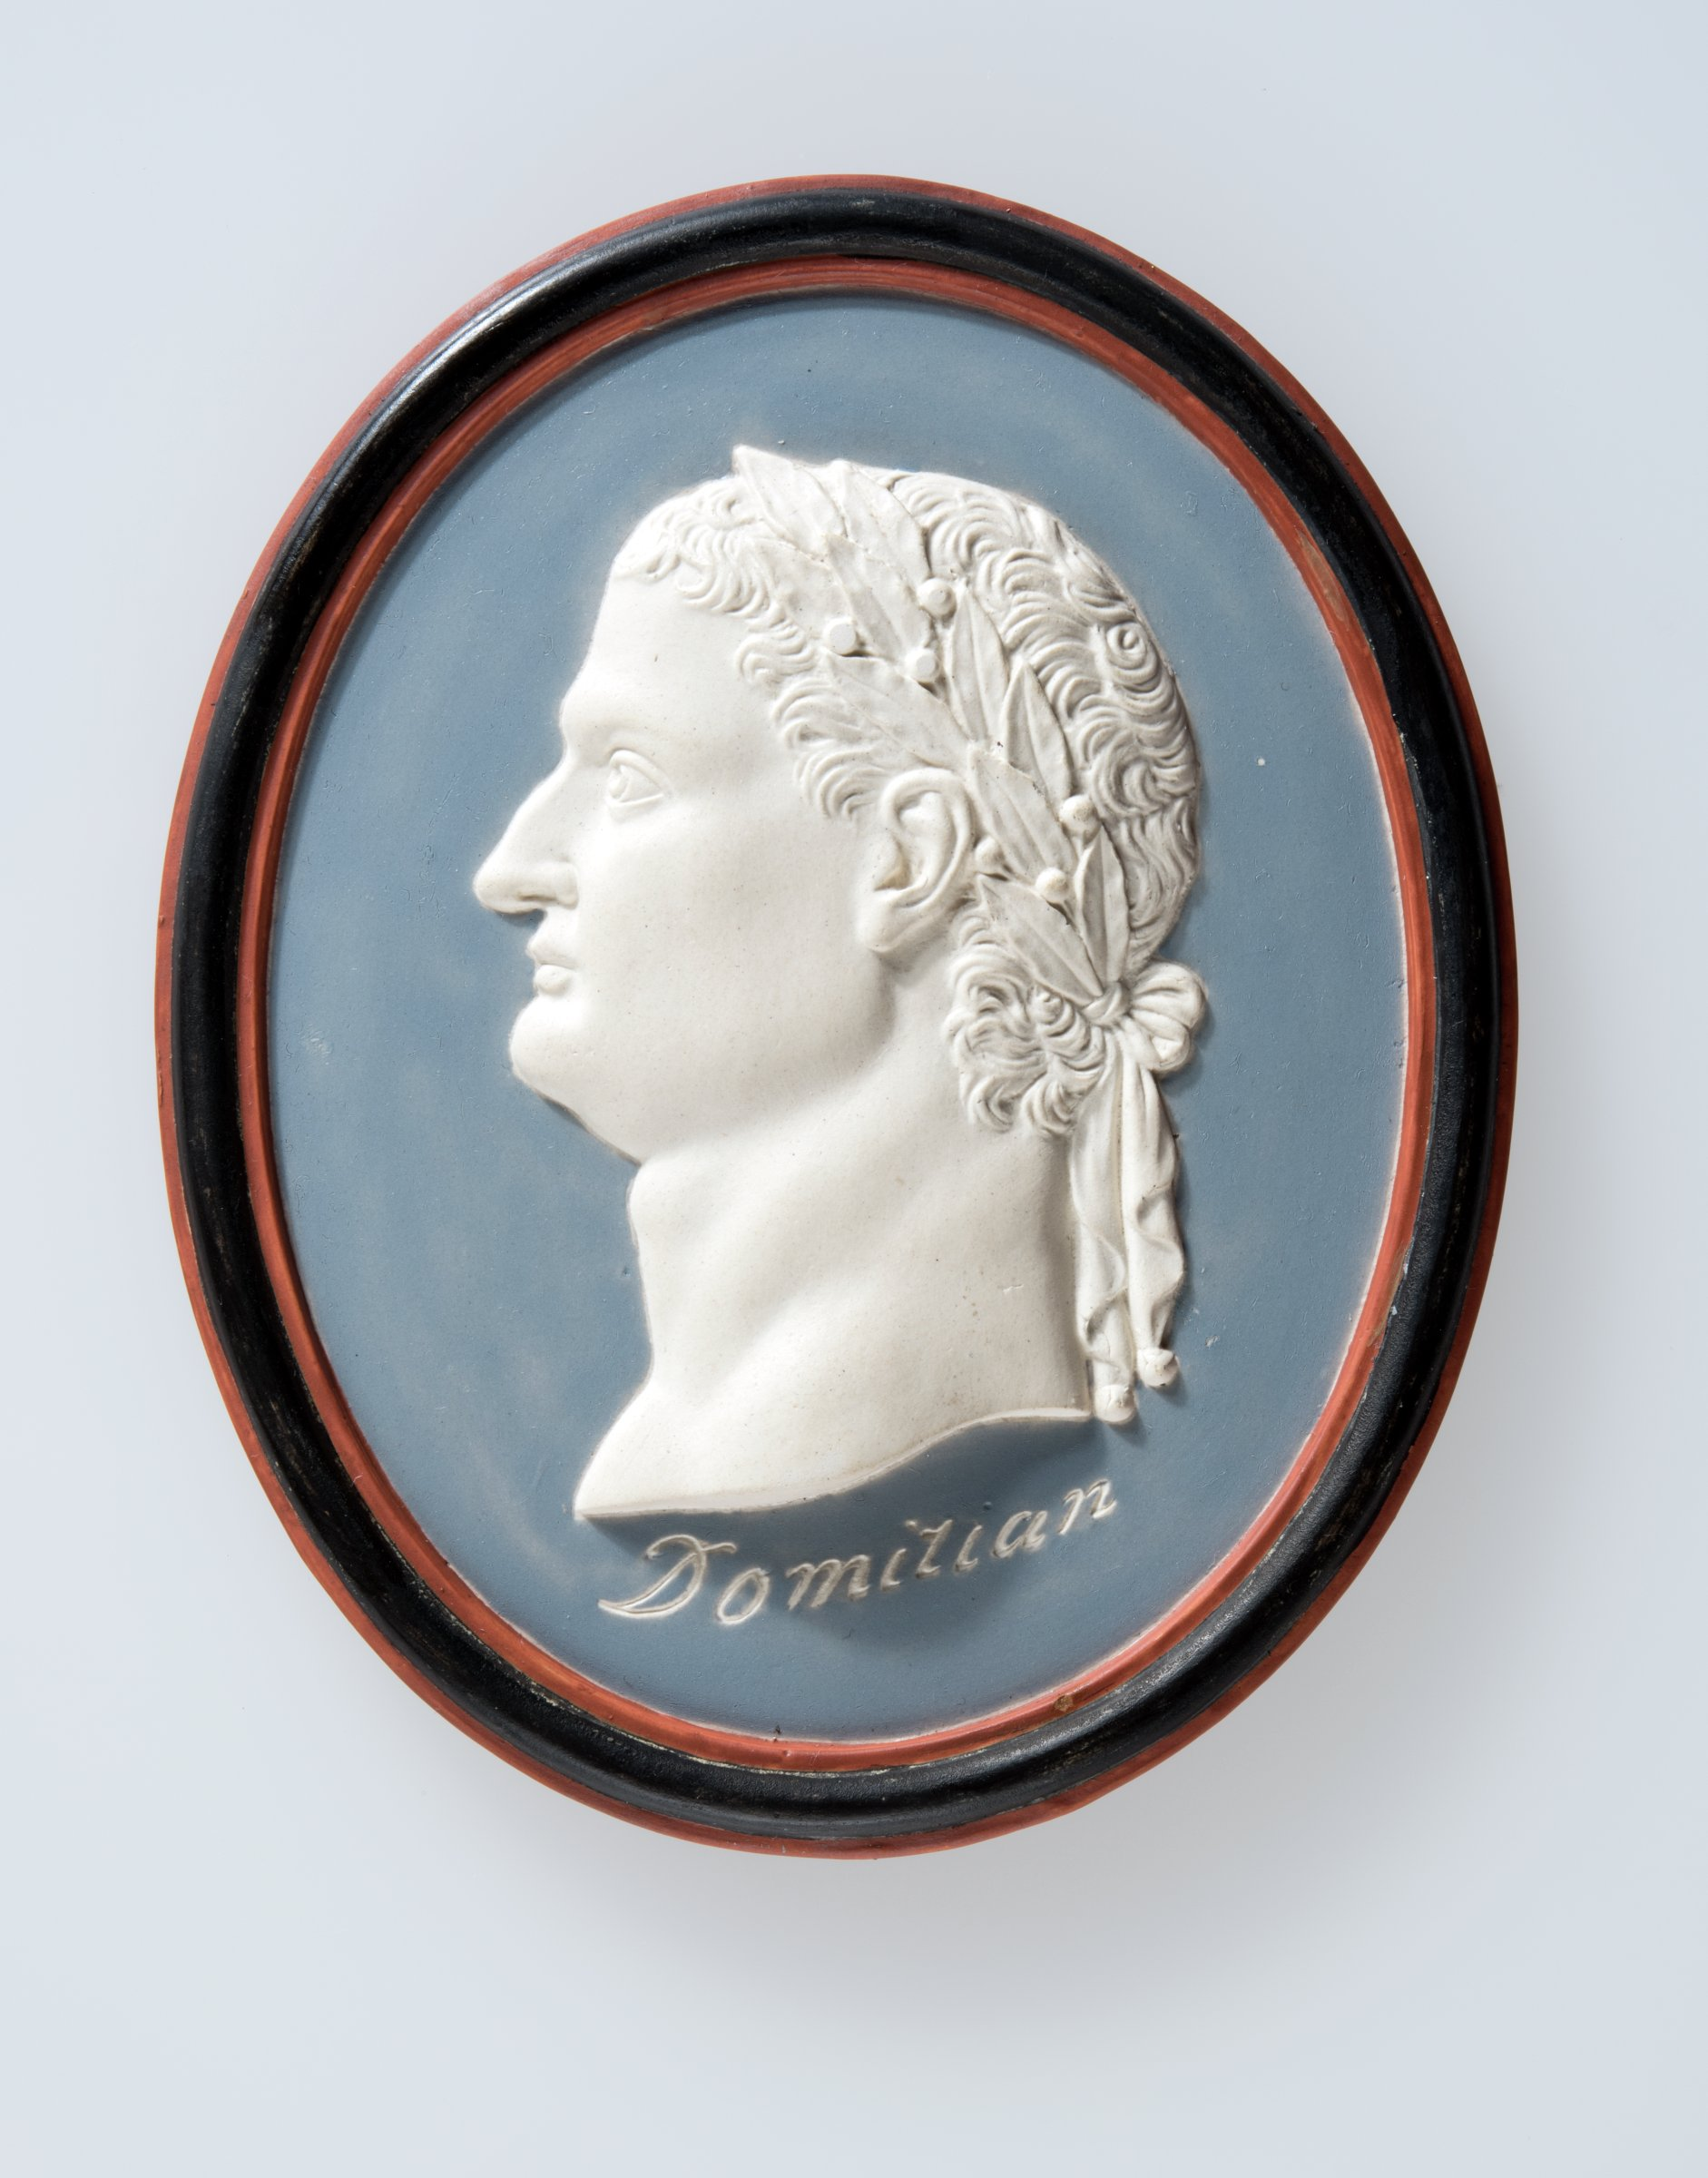 """Oval medallion of enameled creamware with the portrait of the Roman Emperor Domitian with laurel leaf crown to left and the name """"Domitian"""" below the truncation, the portrait is cream while the ground is a light blue with a border of Etruscan red and black, the reverse likewise enameled light blue."""